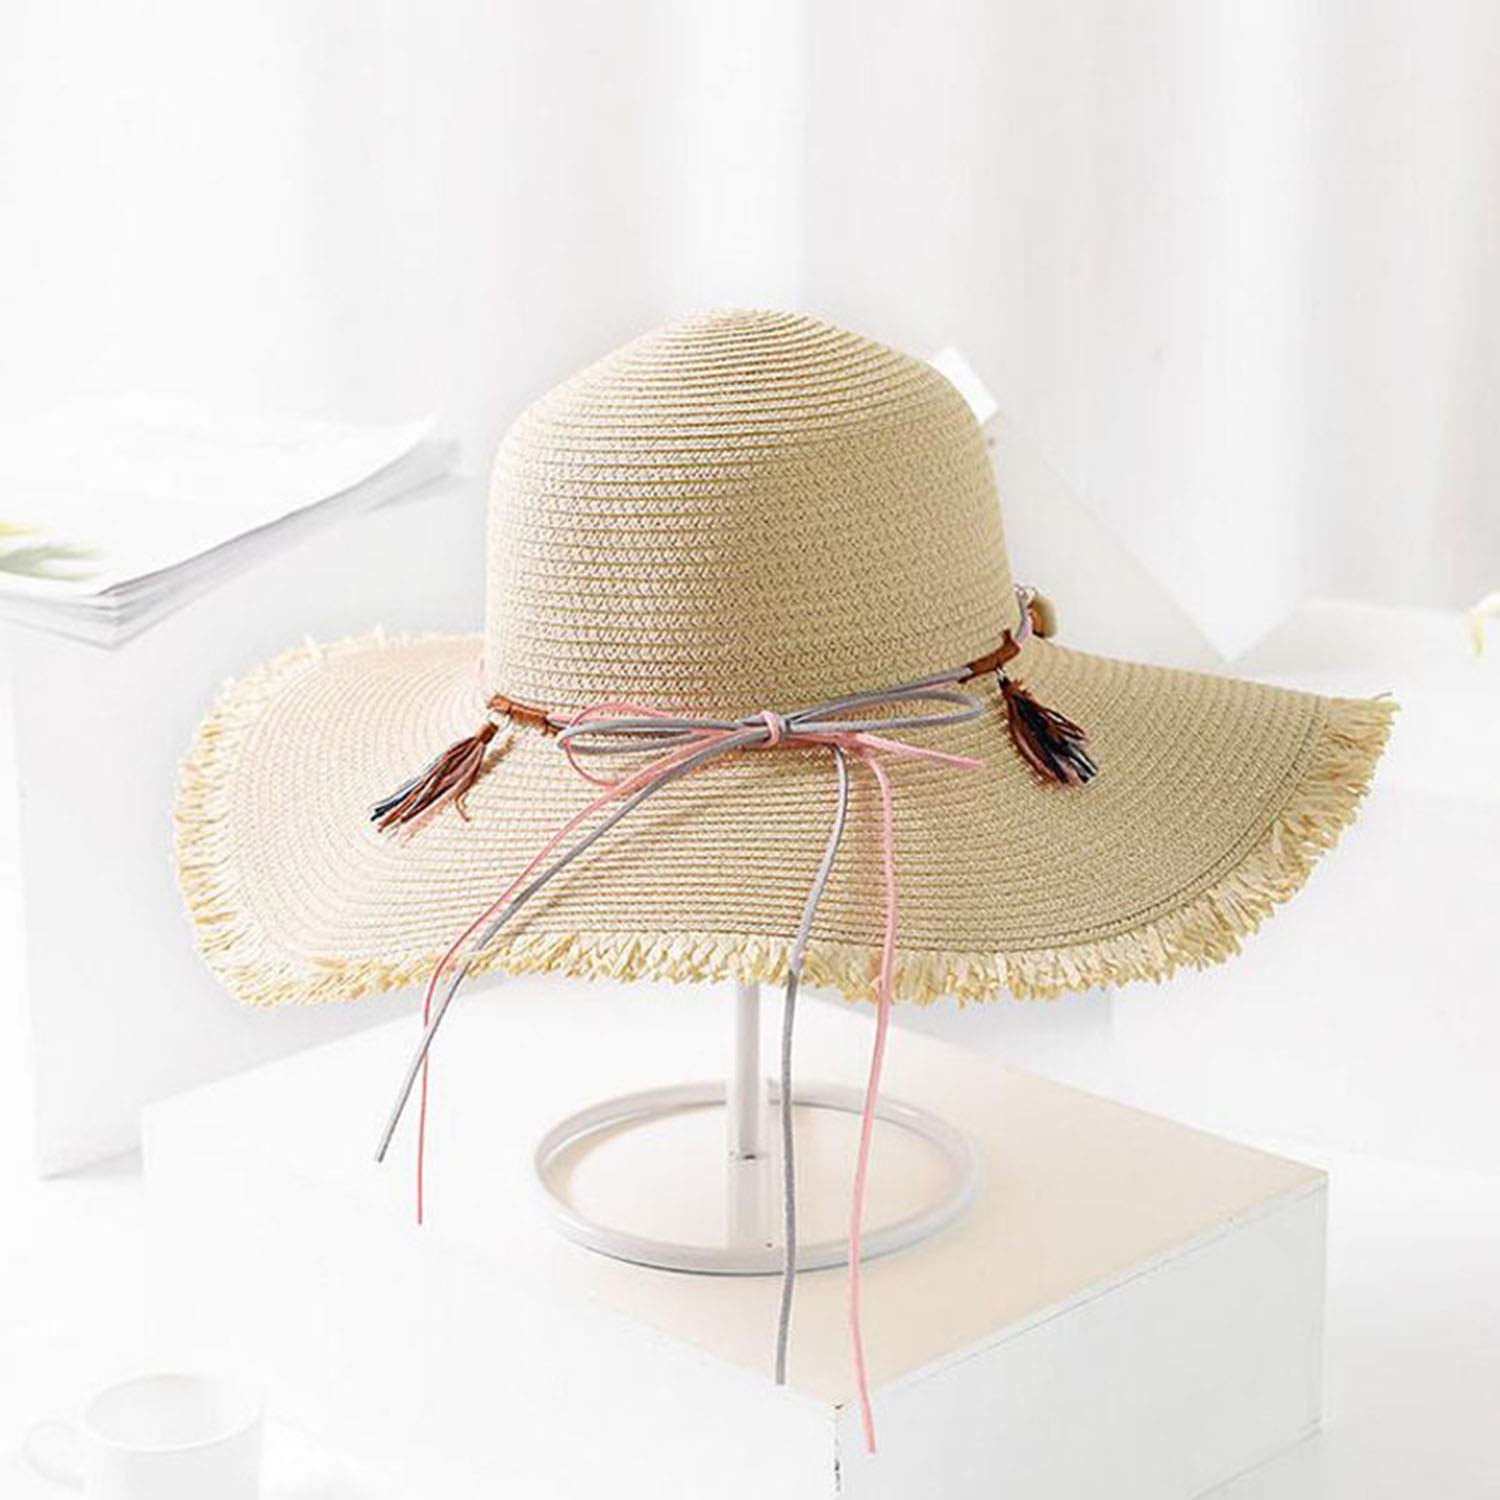 916ee74c8 Cyose Fashion Vintage Bow Decoration Straw Hats Floppy Wide Large ...